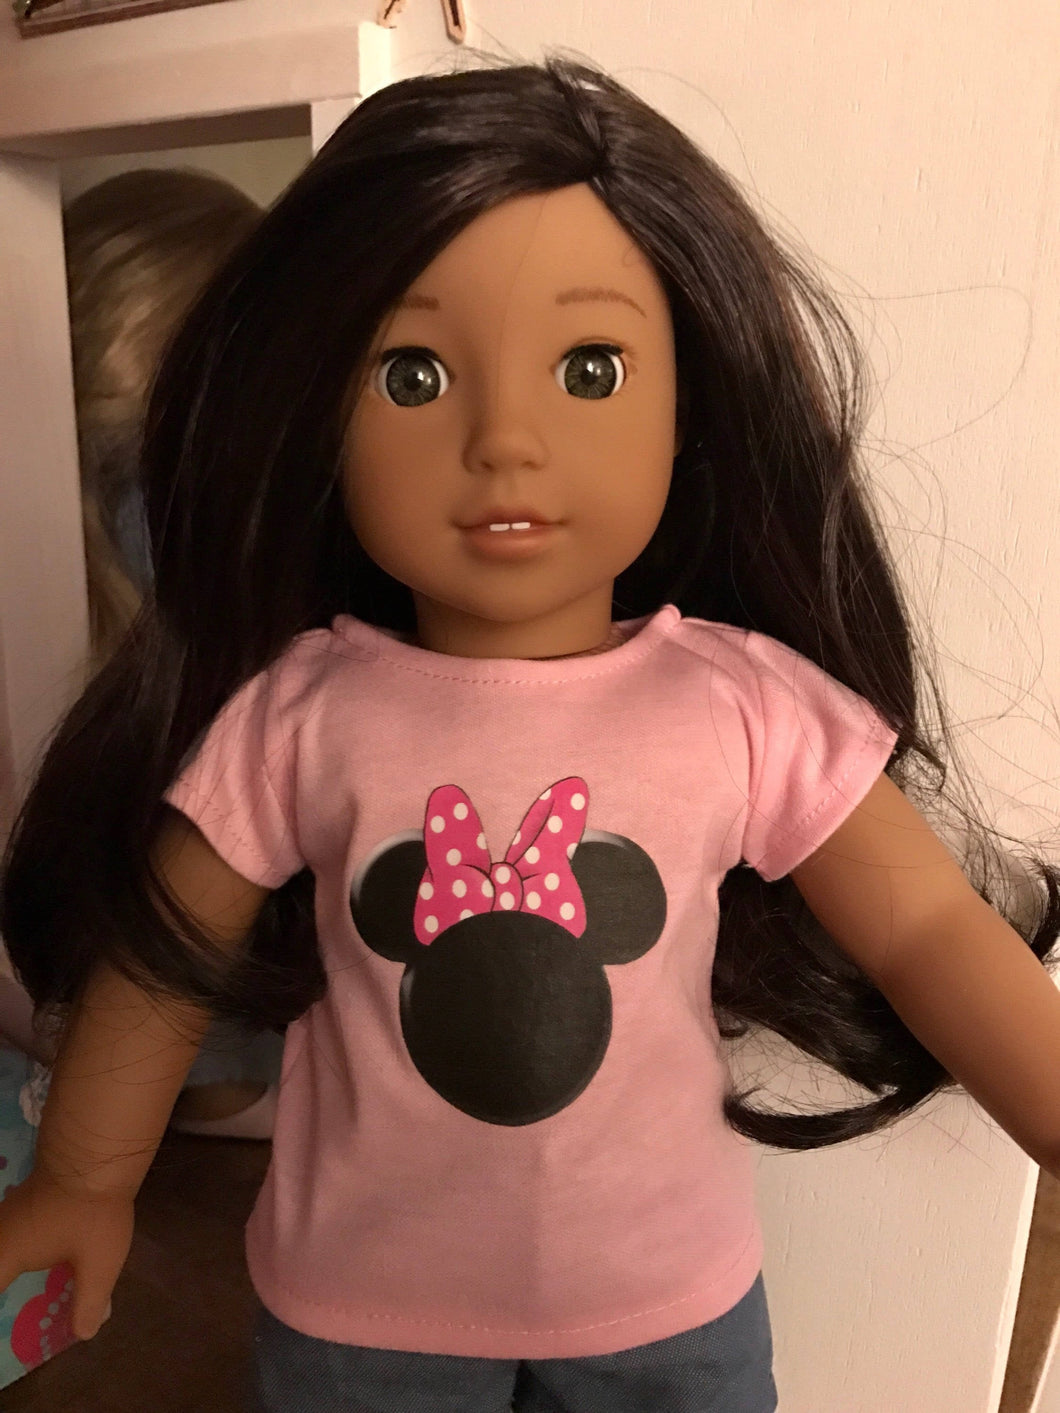 Mouse Ears Doll Tshirts for American Girl Dolls